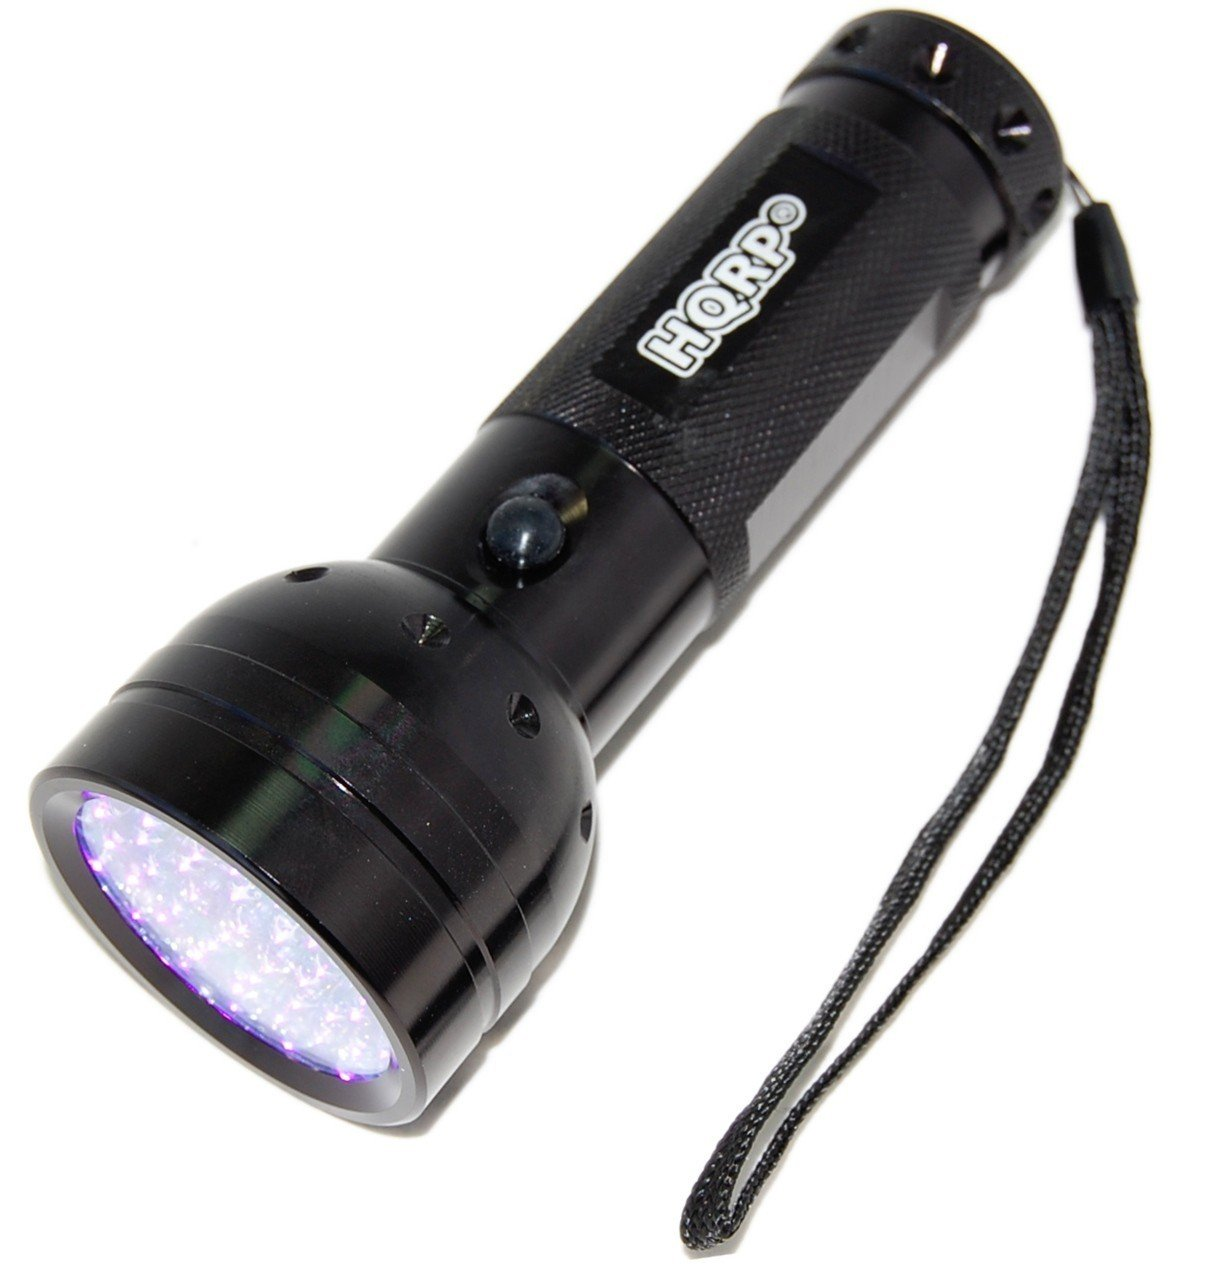 HQRP Portable Ultra Violet Black UV Torch Light Fake Money Detector + Glasses